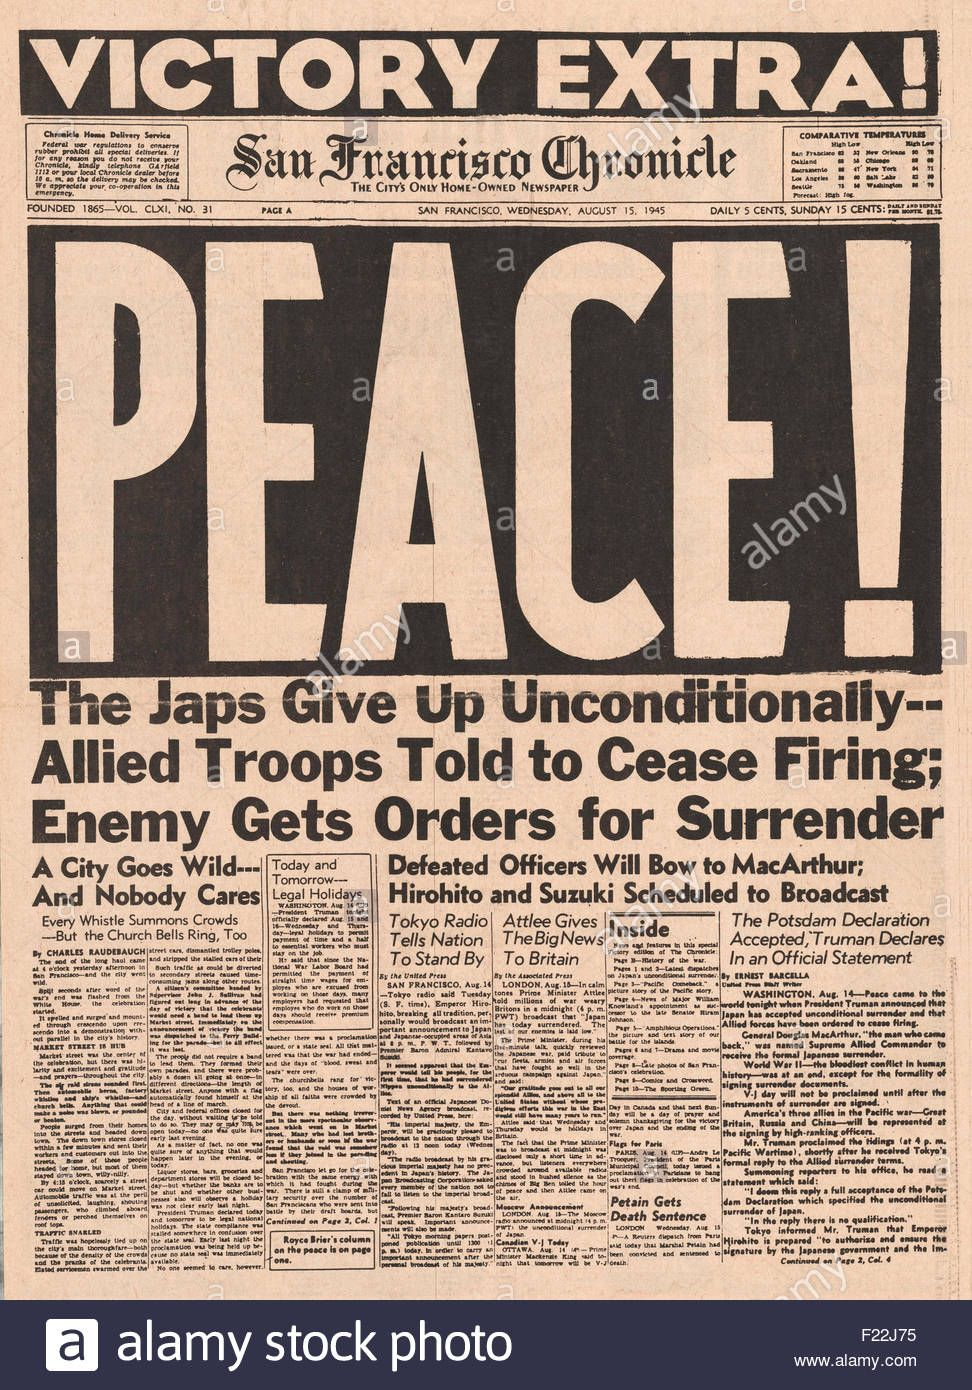 1945 San Francisco Chronicle Front Page Reporting The End Of World